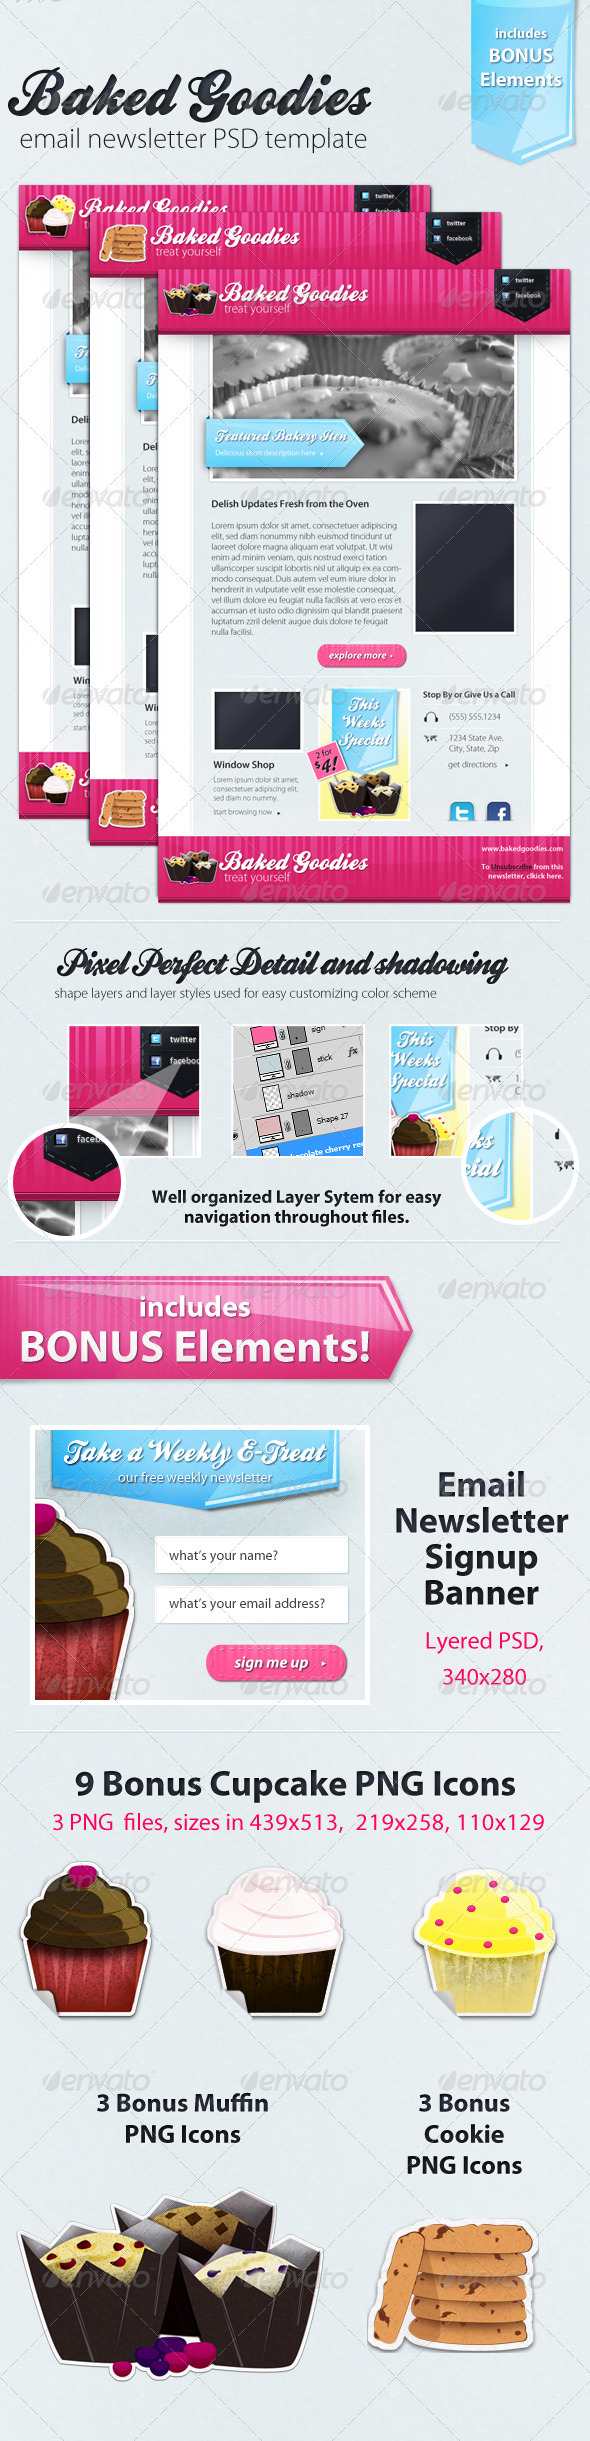 GraphicRiver Baked Goodies Email Newsletter PSD Template 263353